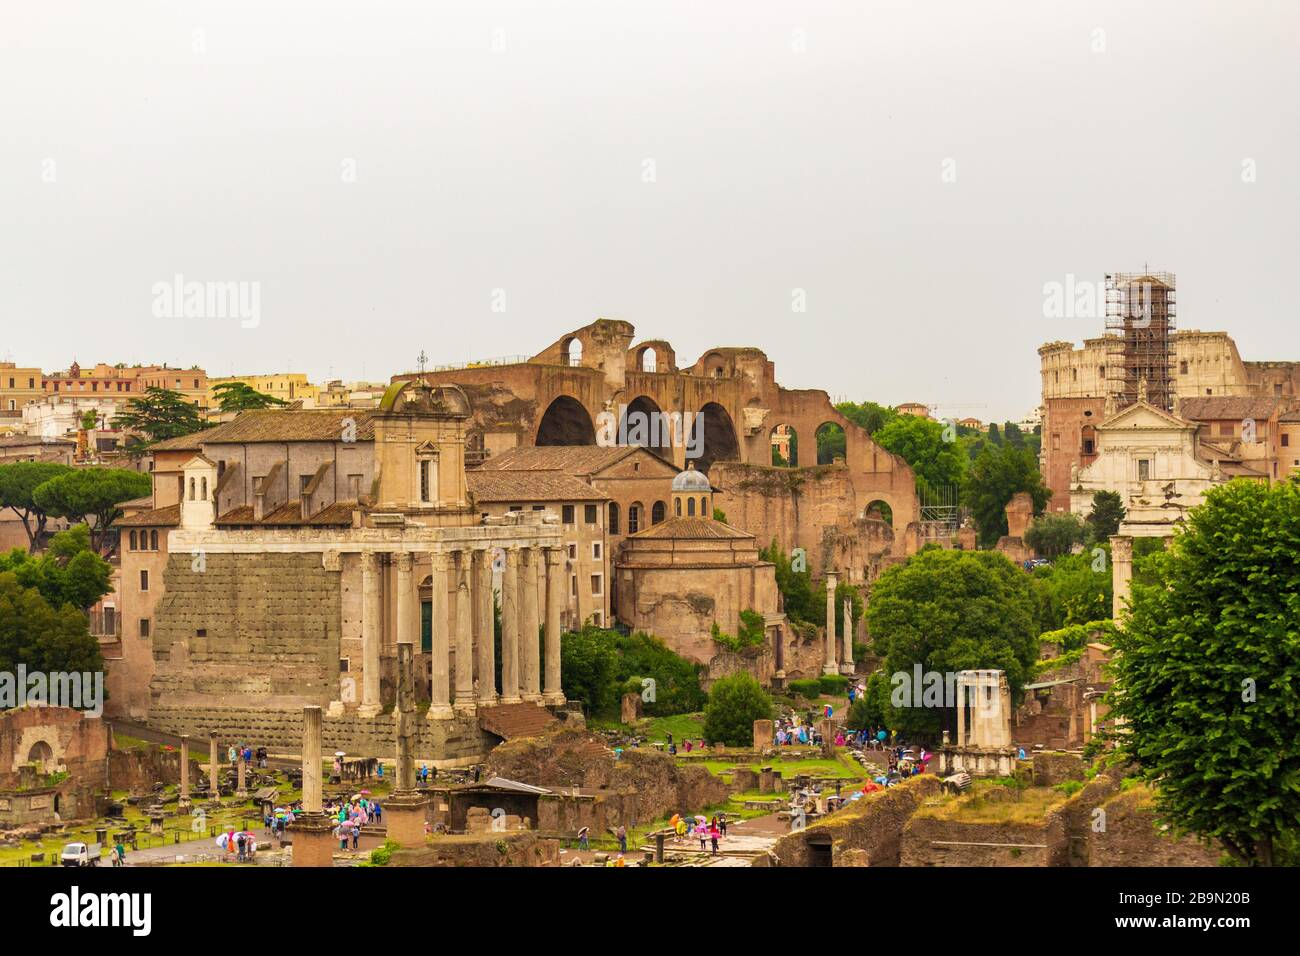 Fila Ps 87 Forum foro stock photos & foro stock images - page 4 - alamy